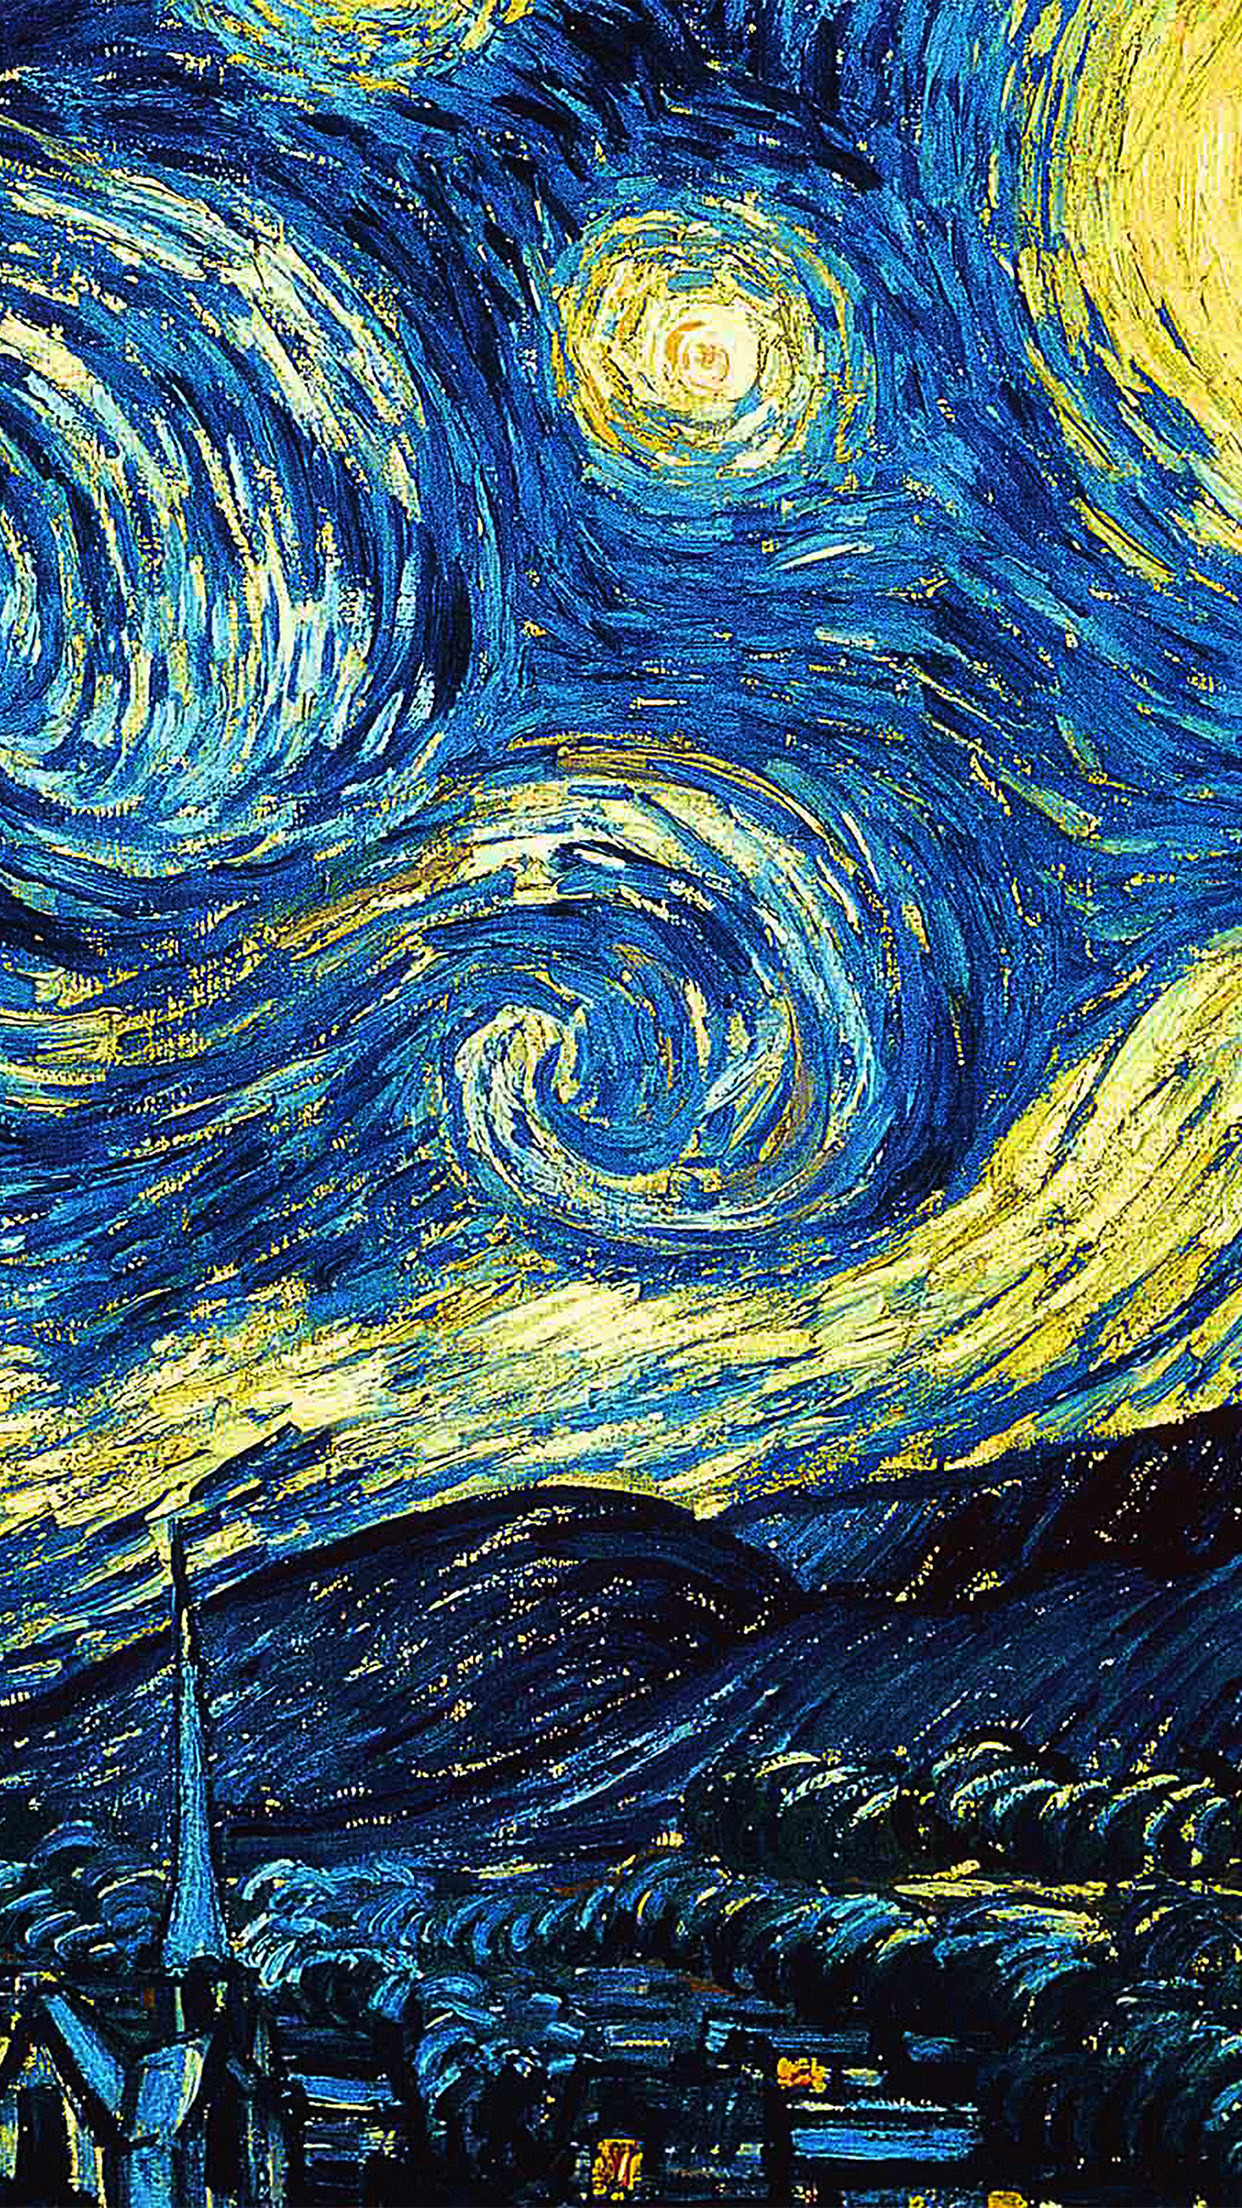 Van Gogh Starry Night Iphone Wallpaper Papers Co Iphone Wallpaper Ar55 Vicent Van Gogh Starry